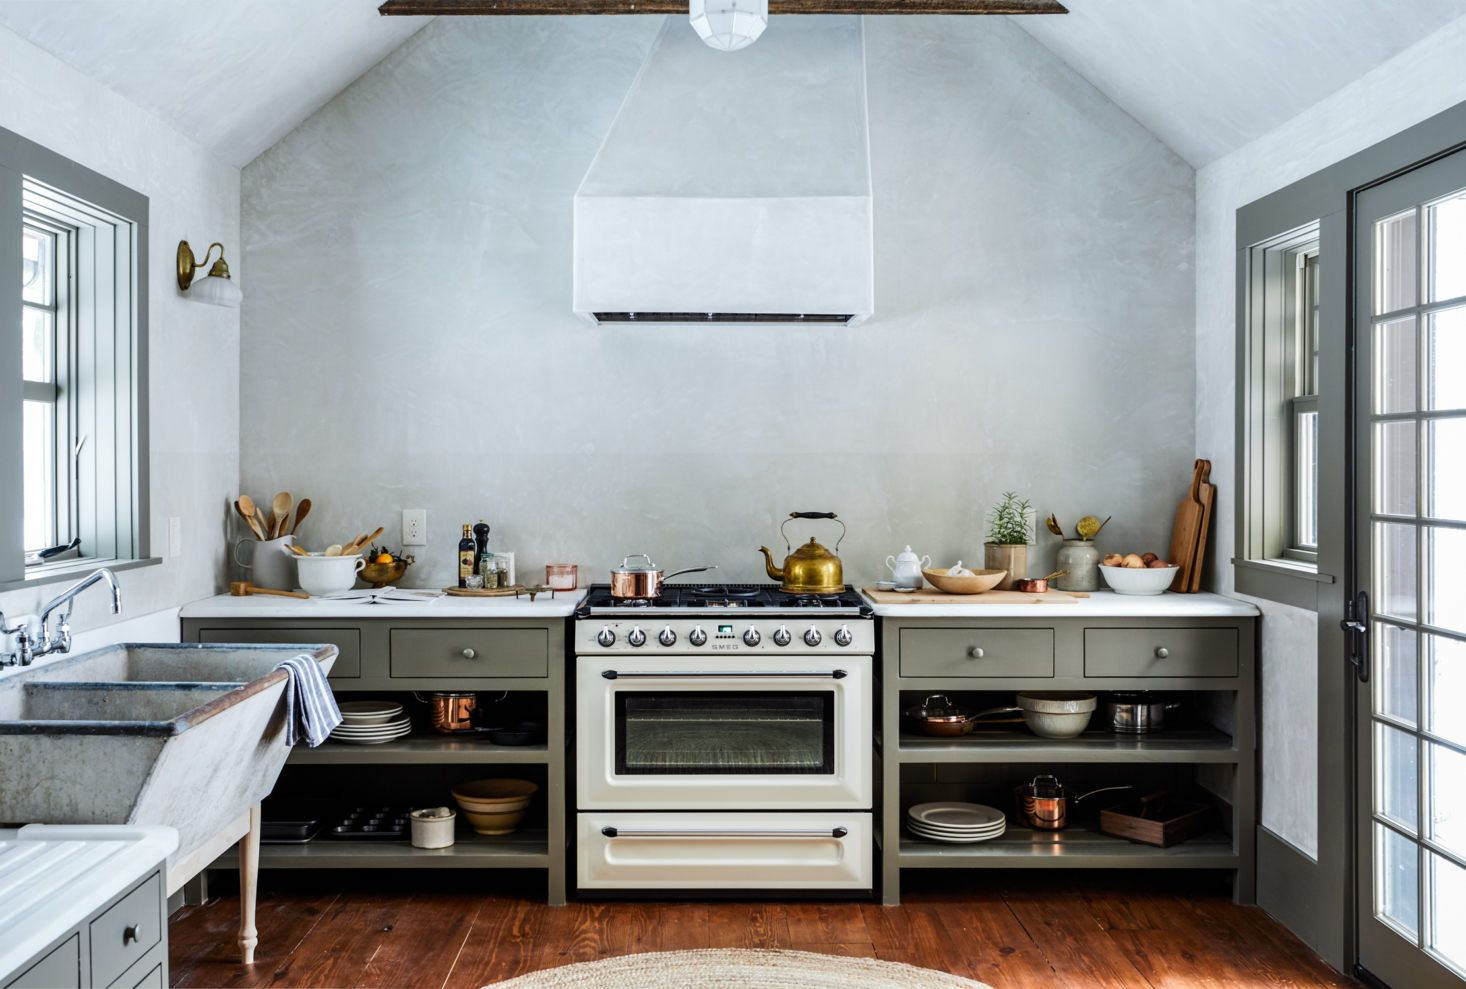 An Arts And Crafts Icon Reborn In The Catskills By Jersey Ice Cream Co Remodelista Kitchen Design Kitchen Remodel Kitchen Inspirations